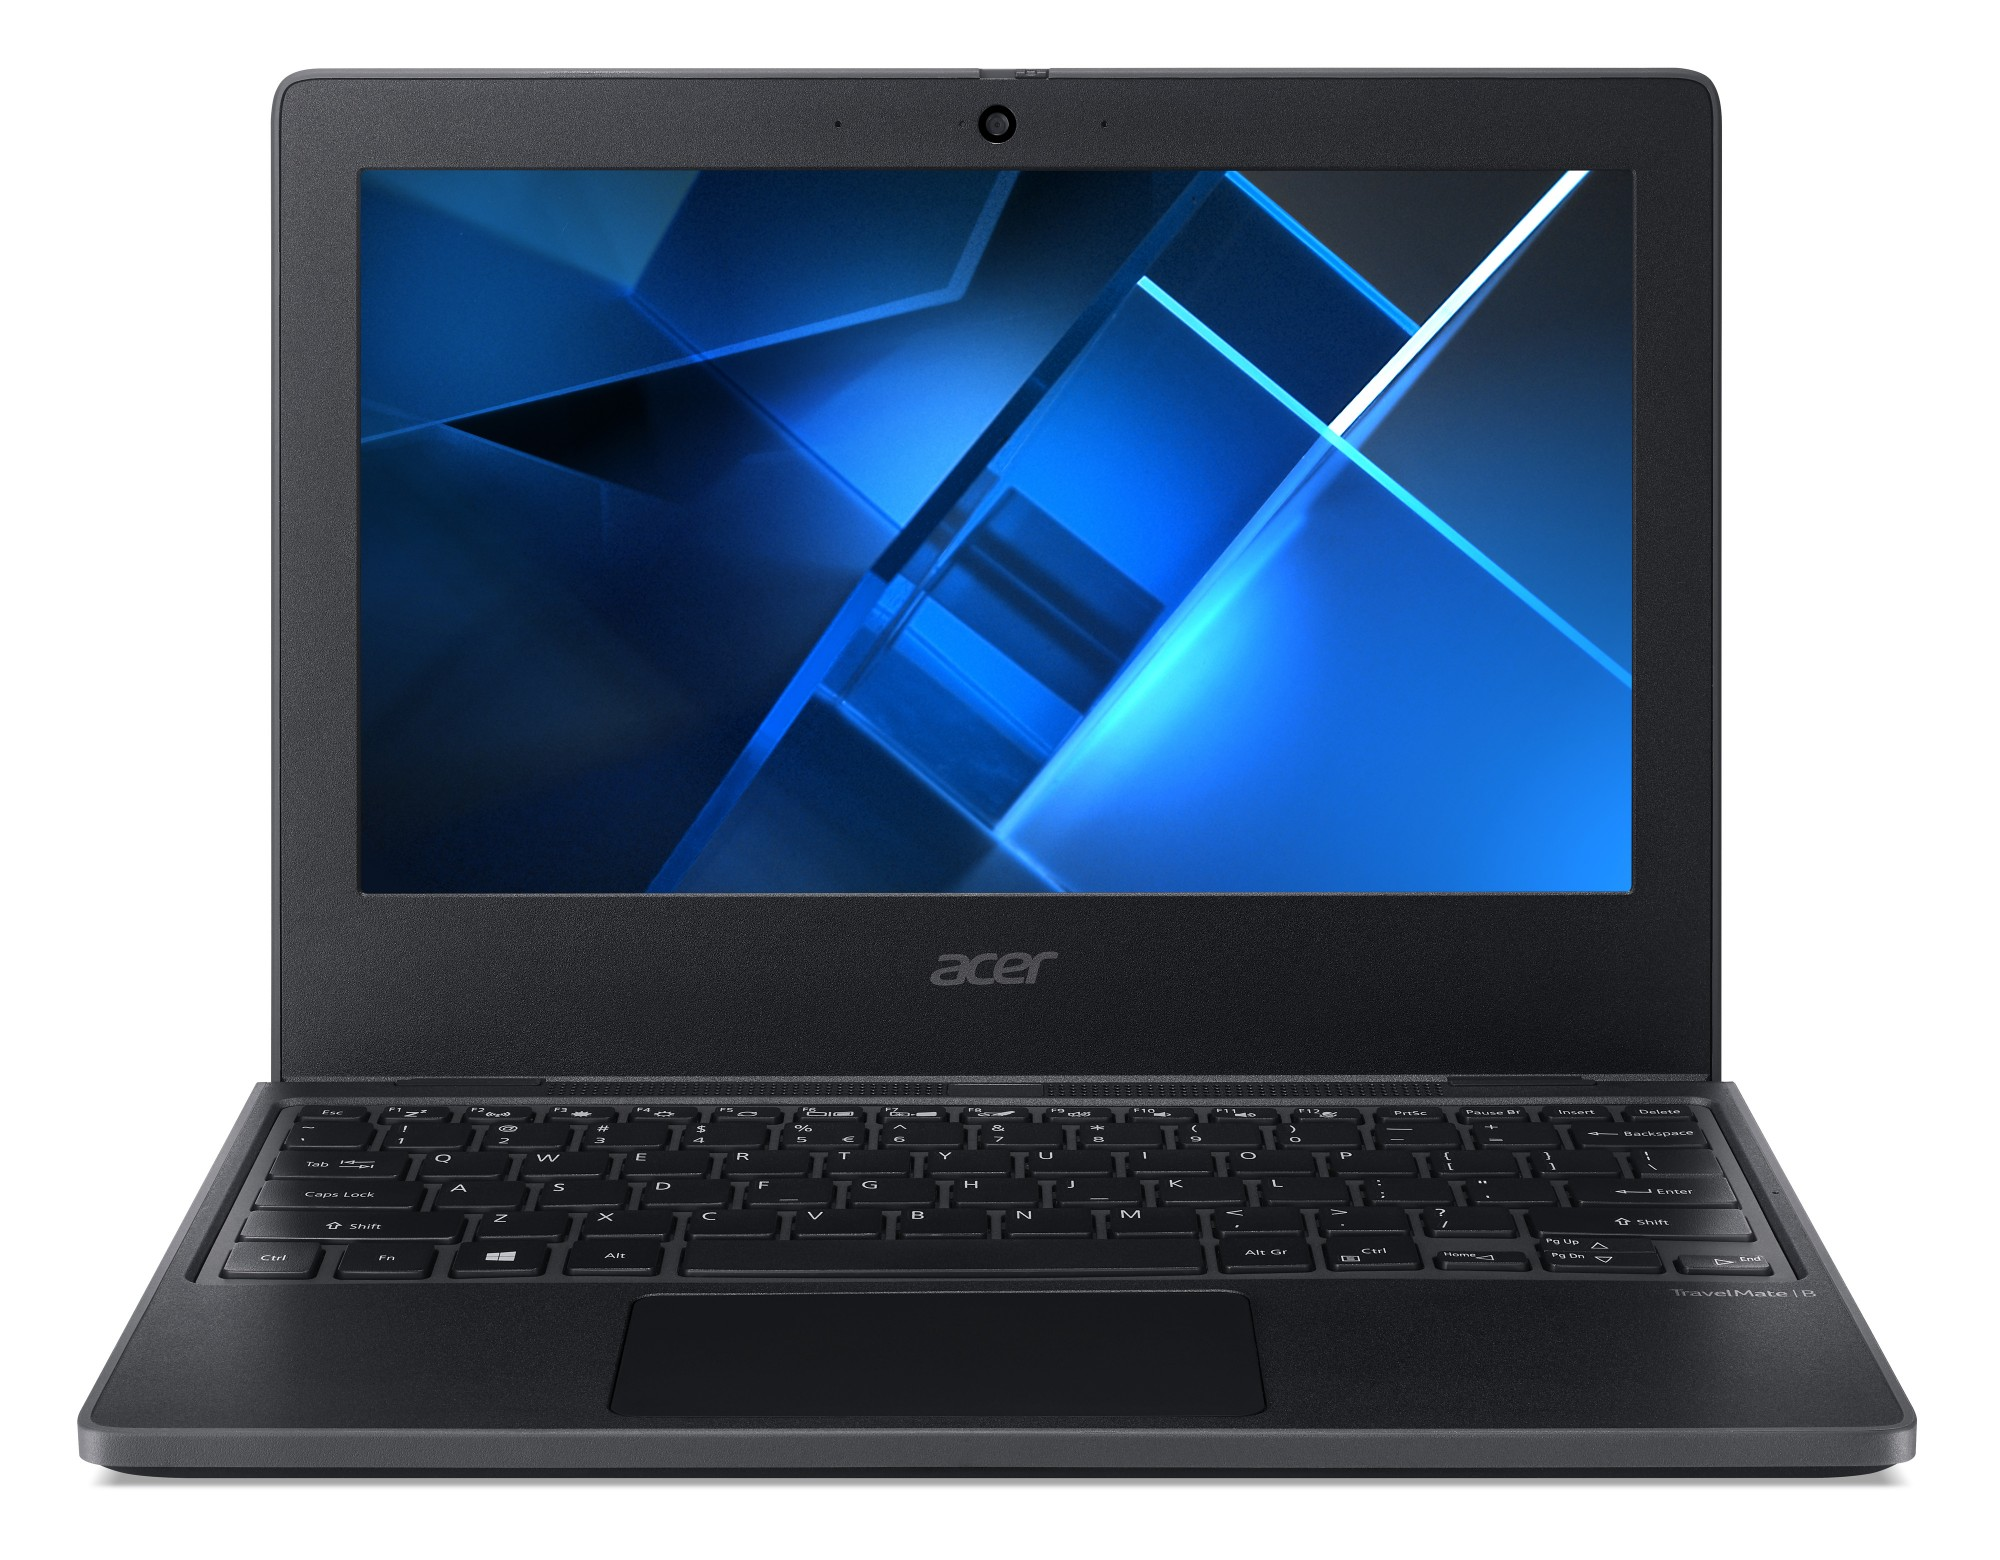 "Acer TravelMate TMB311-31-C5KC Notebook Black 29.5 cm (11.6"""") 1366 x 768 pixels Intel® Celeron® N 4 GB DDR4-SDRAM 64 GB Flash Wi-Fi 5 (802.11ac) Windows 10 Pro Education"